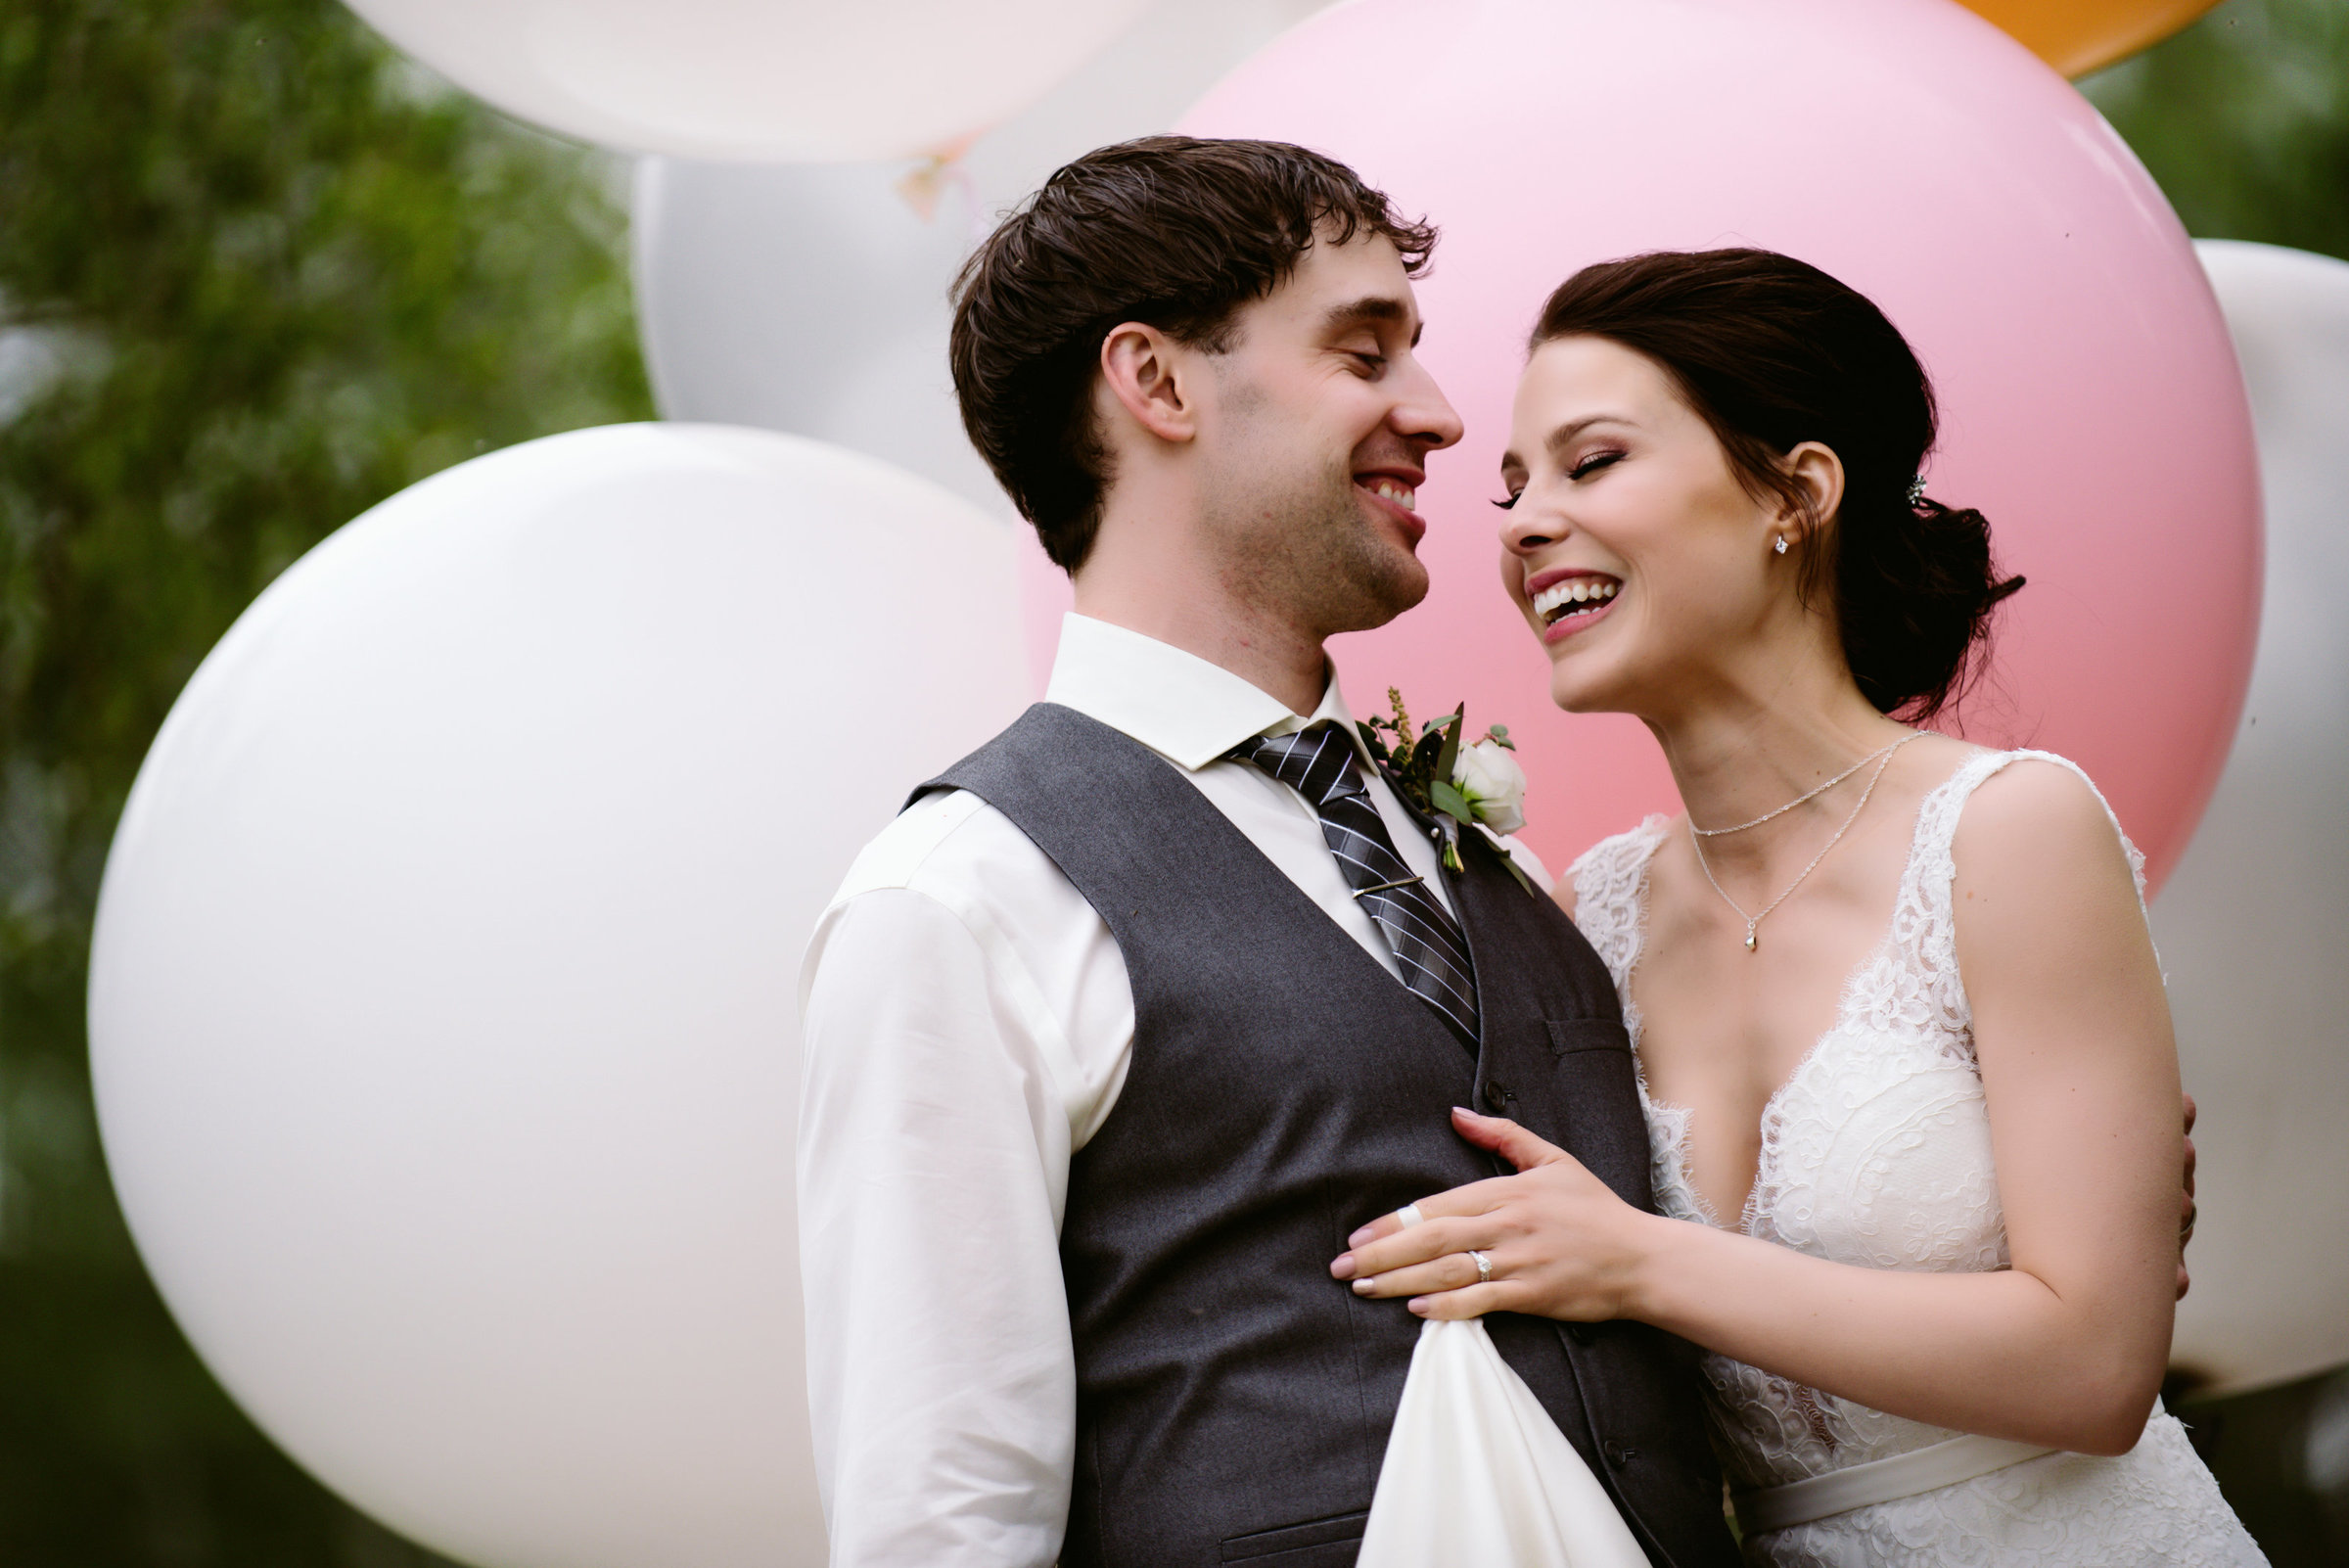 Bride and groom on wedding day with balloons